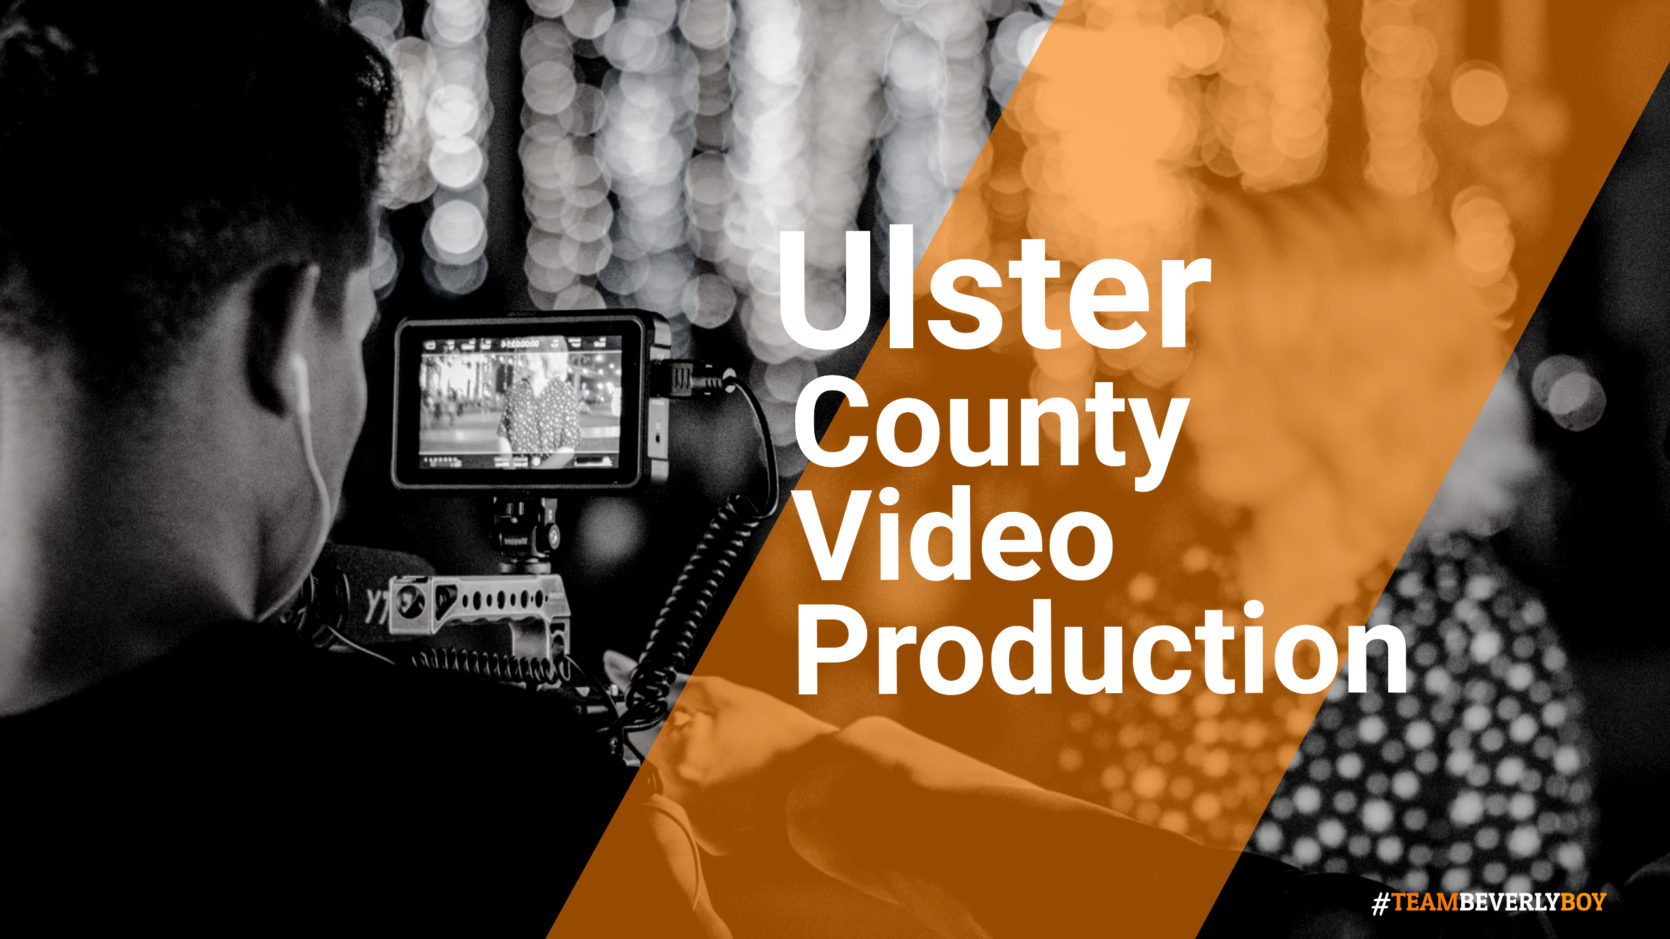 Ulster County Video Production